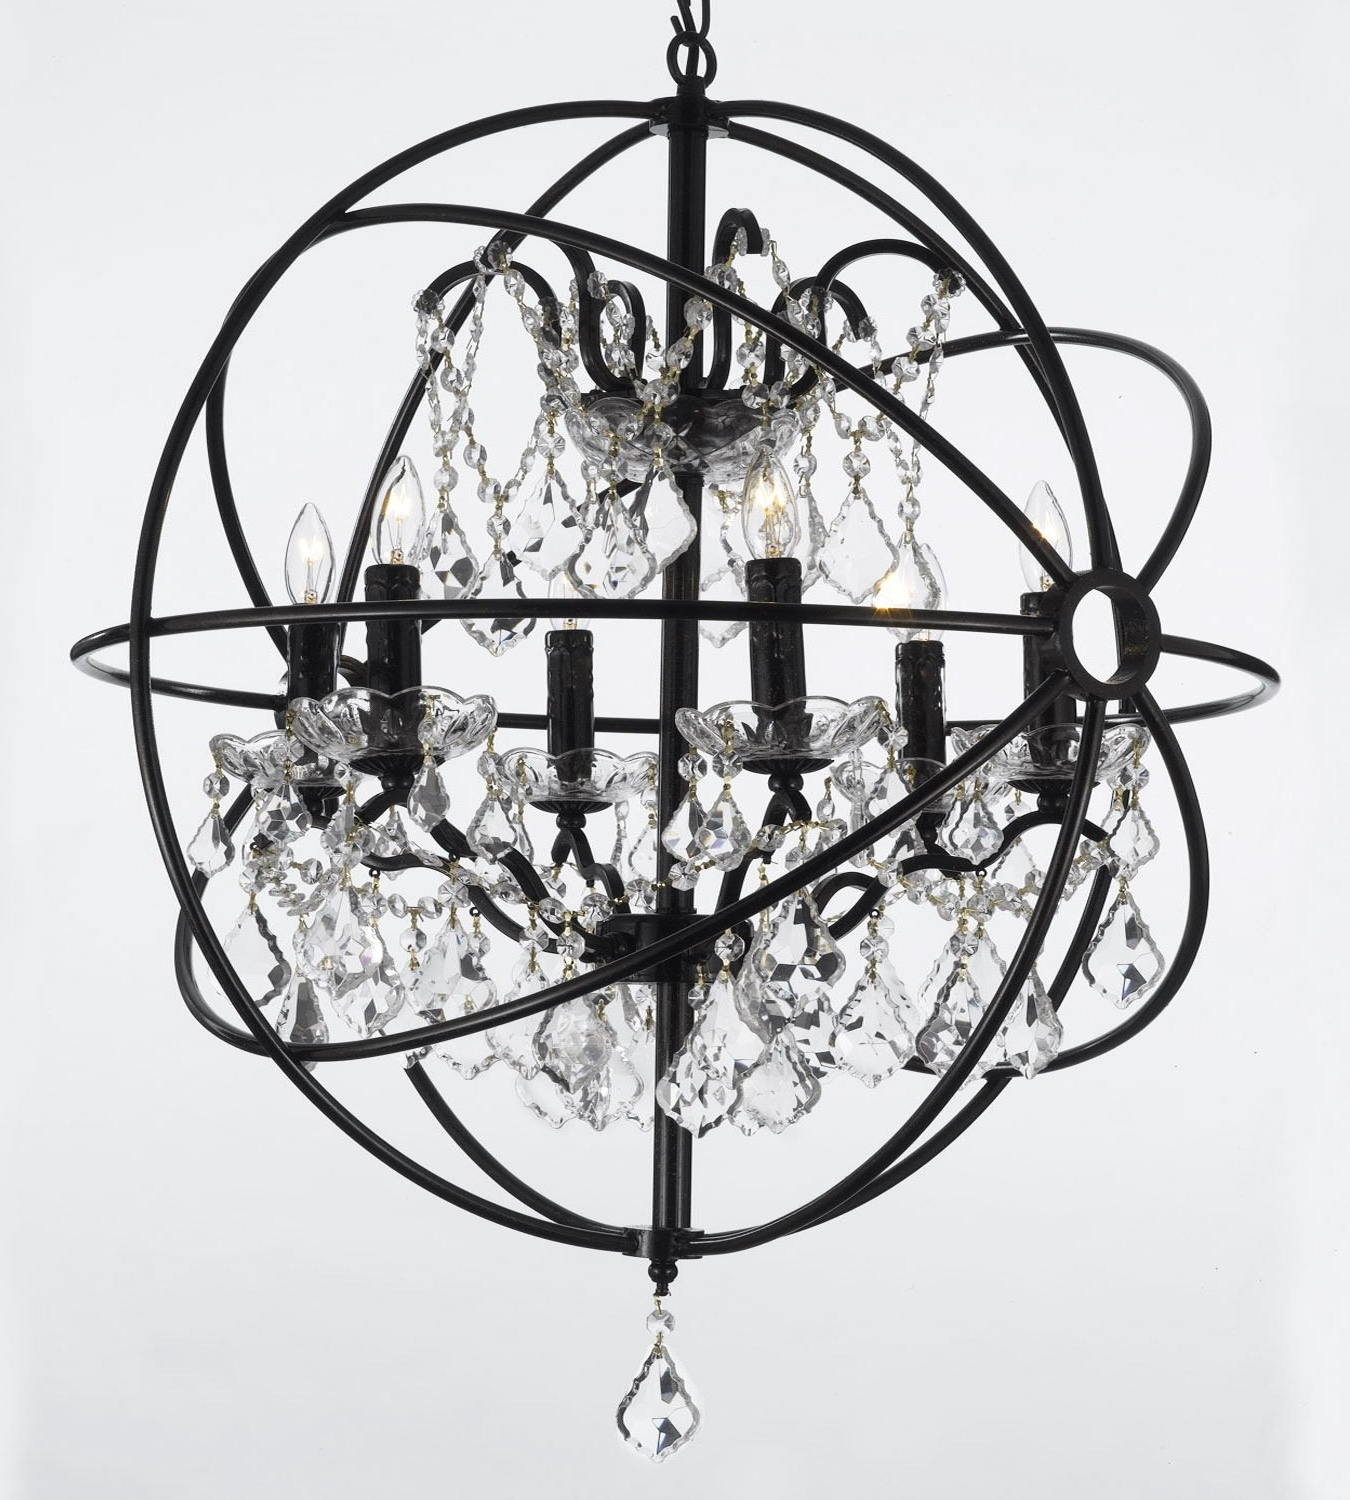 Current Alden 6 Light Globe Chandeliers Pertaining To Calderdale Orb 6 Light Globe Chandelier (View 4 of 25)